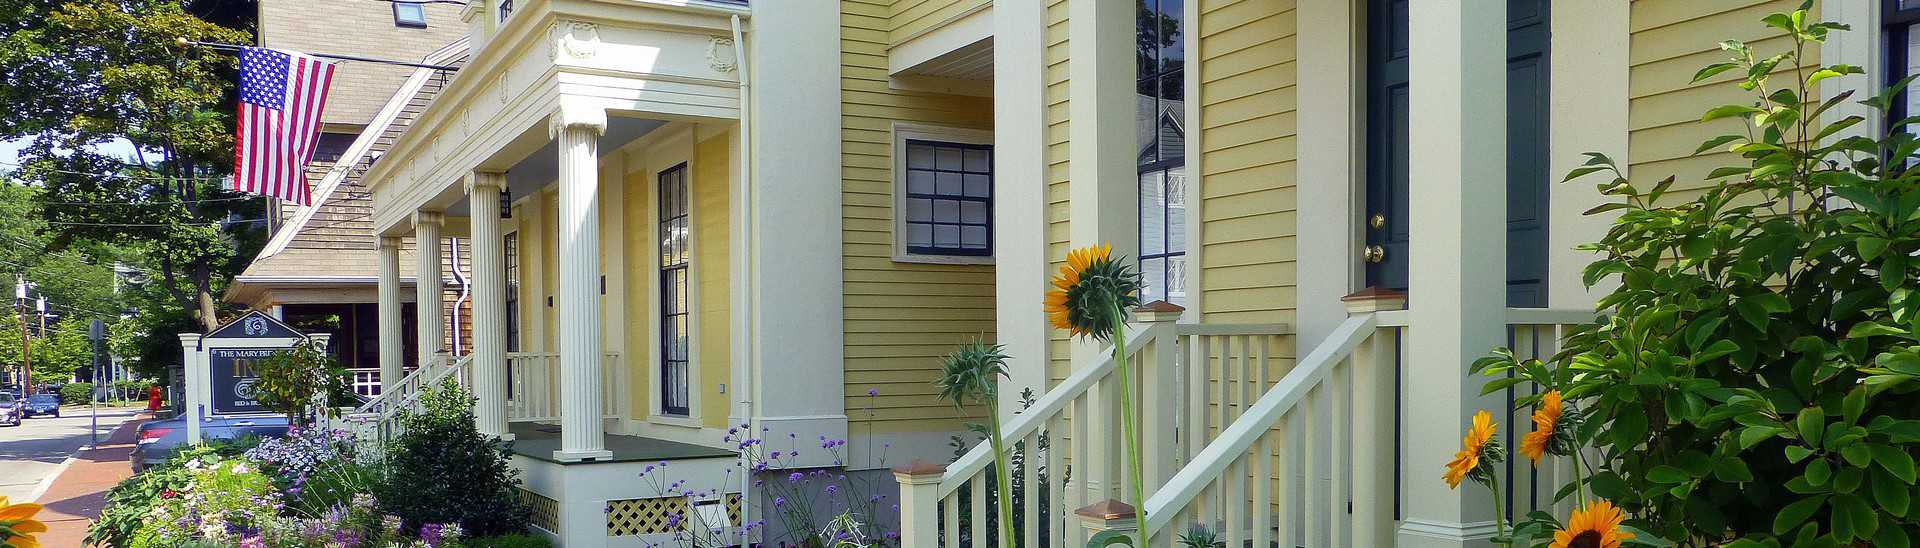 Exterior of yellow house along street with white pillars